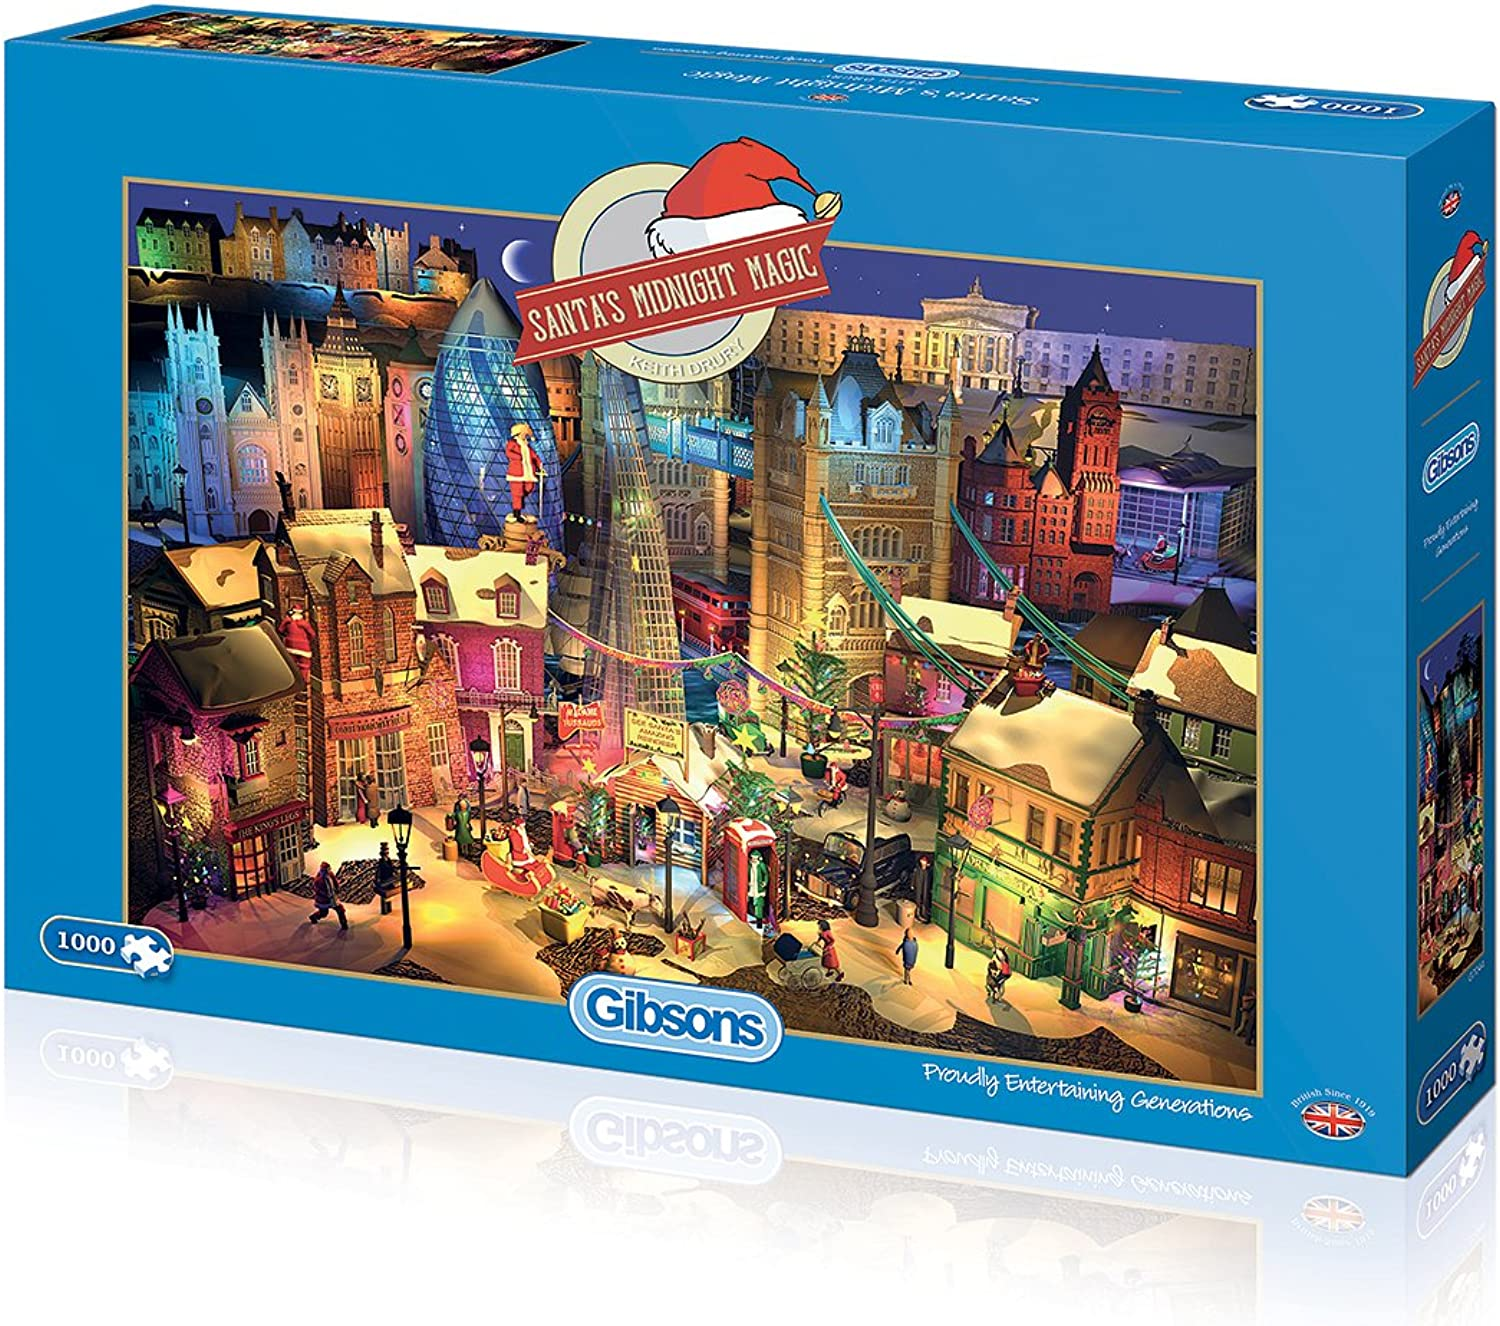 Gibsons Santa's Midnight Magic Jigsaw Puzzle (1000)